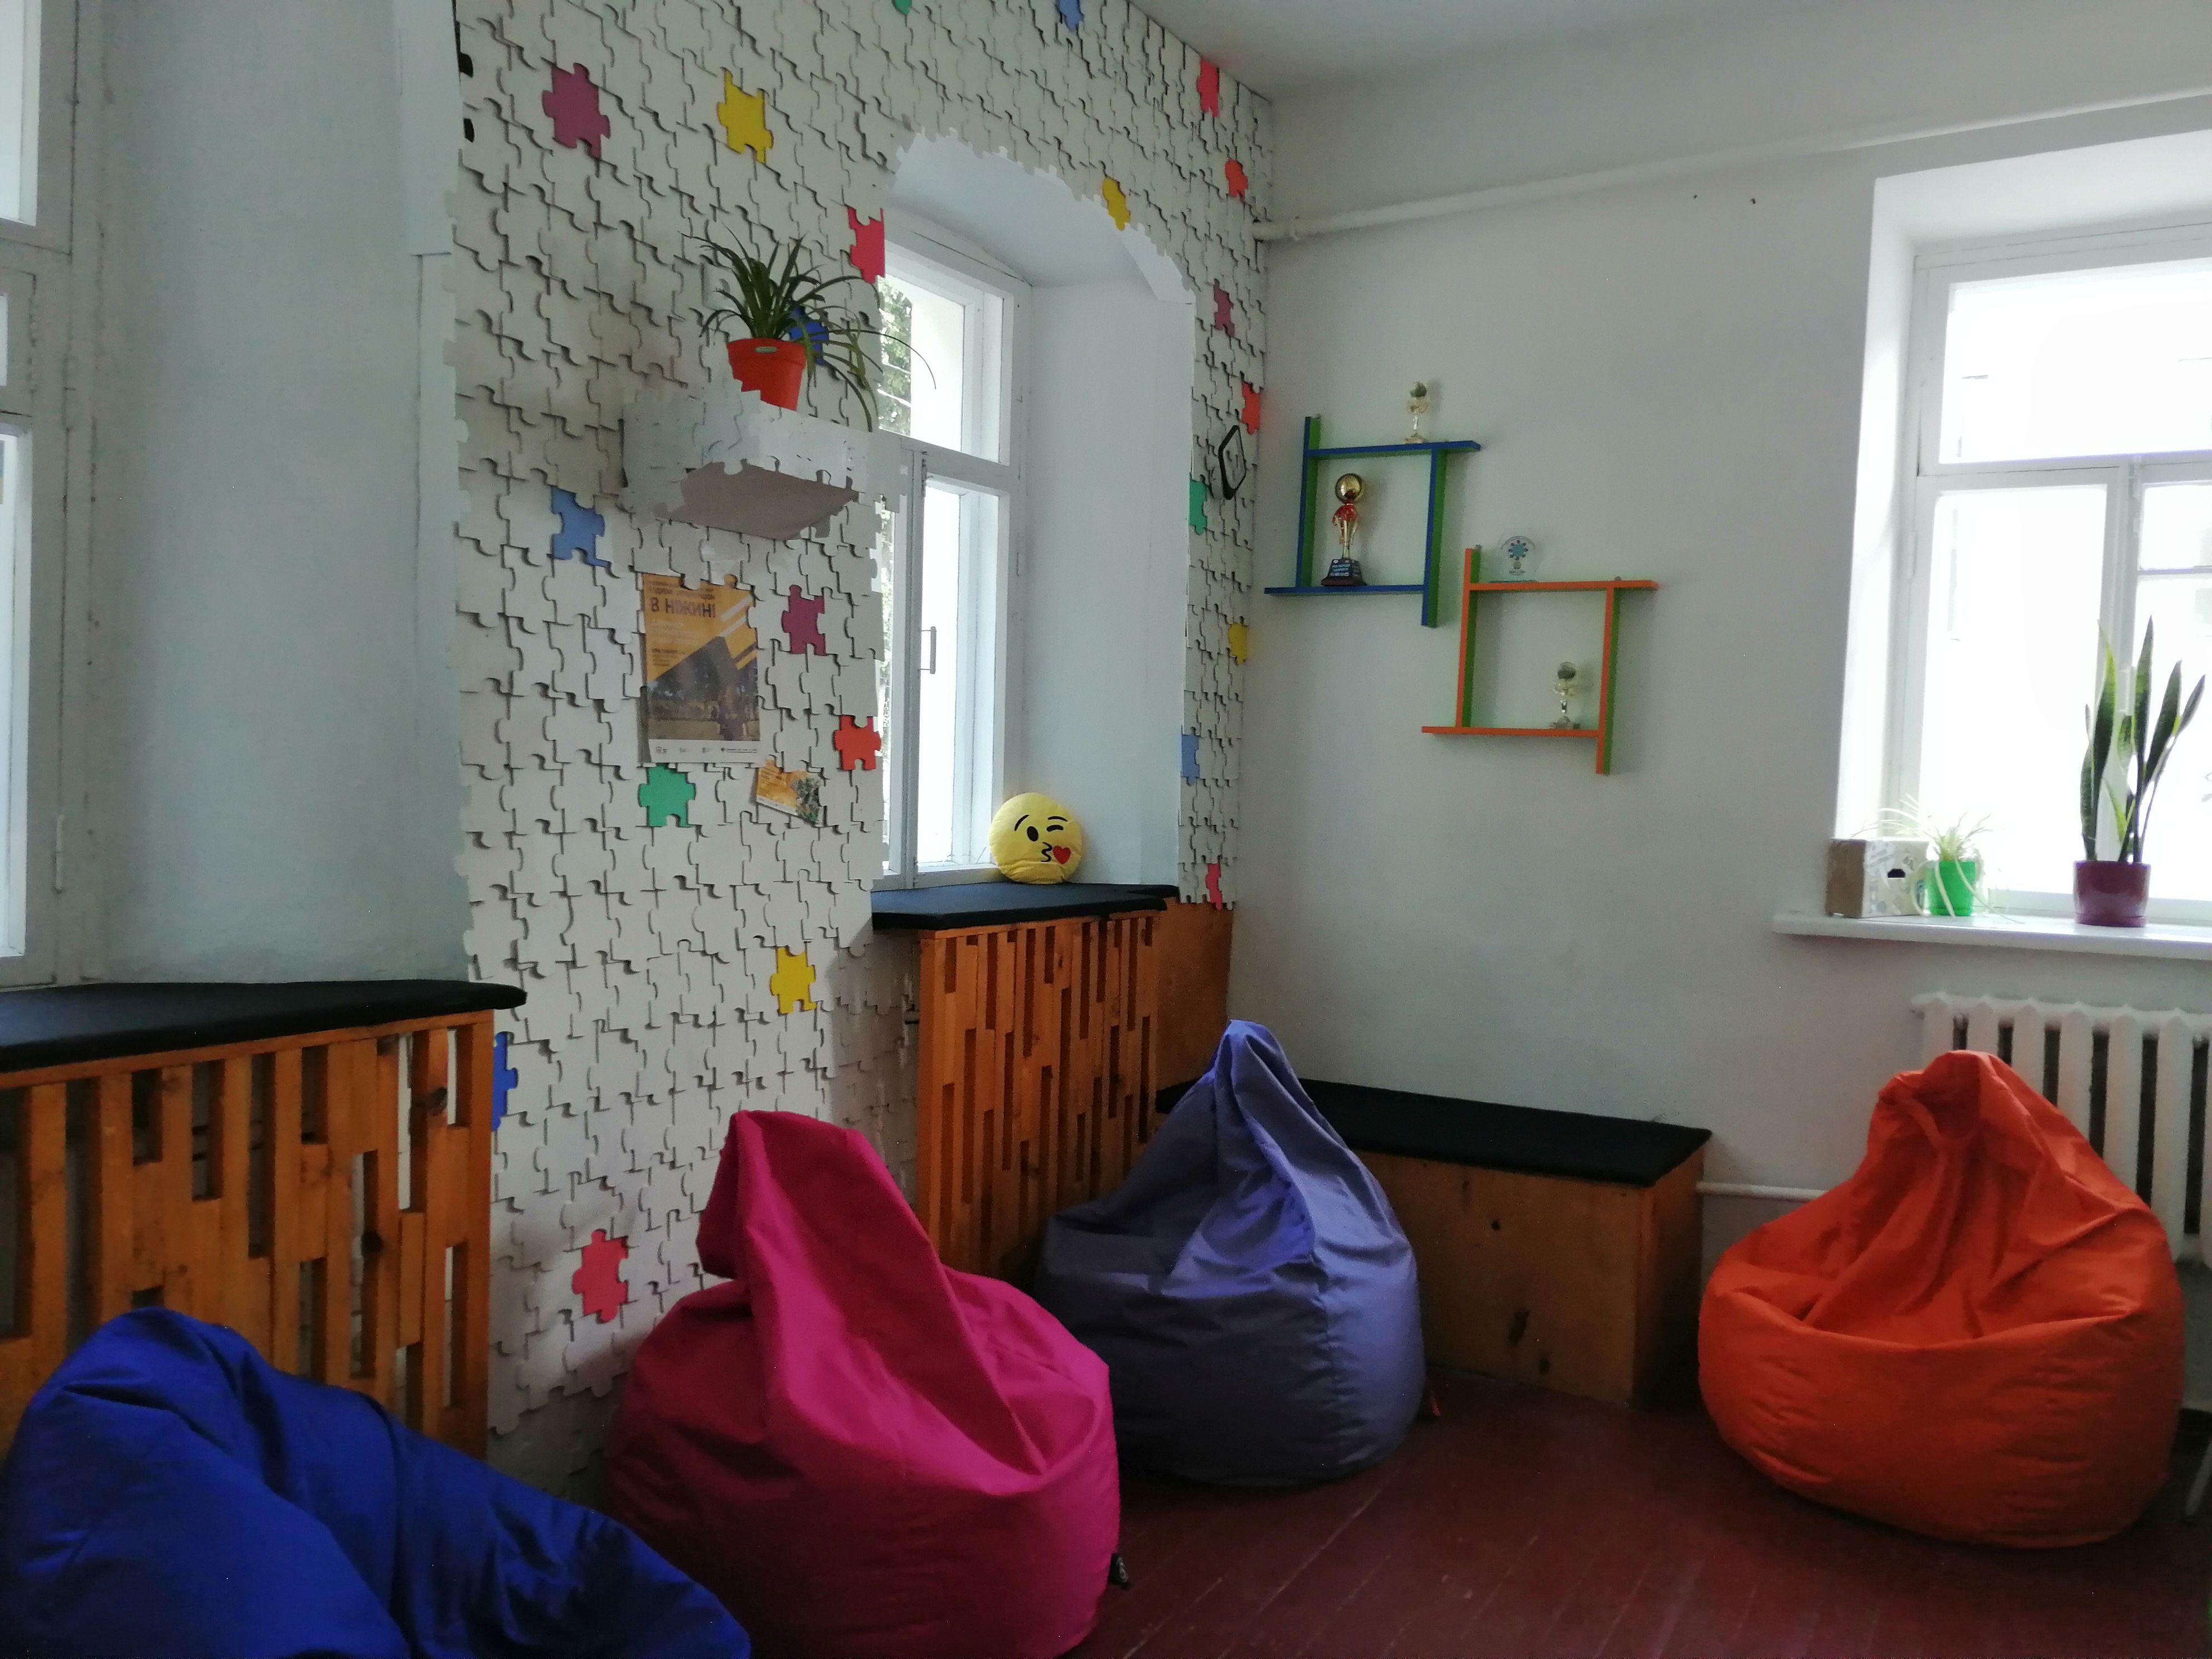 Come and be yourself! - Youth space opened in Nizhynska AH